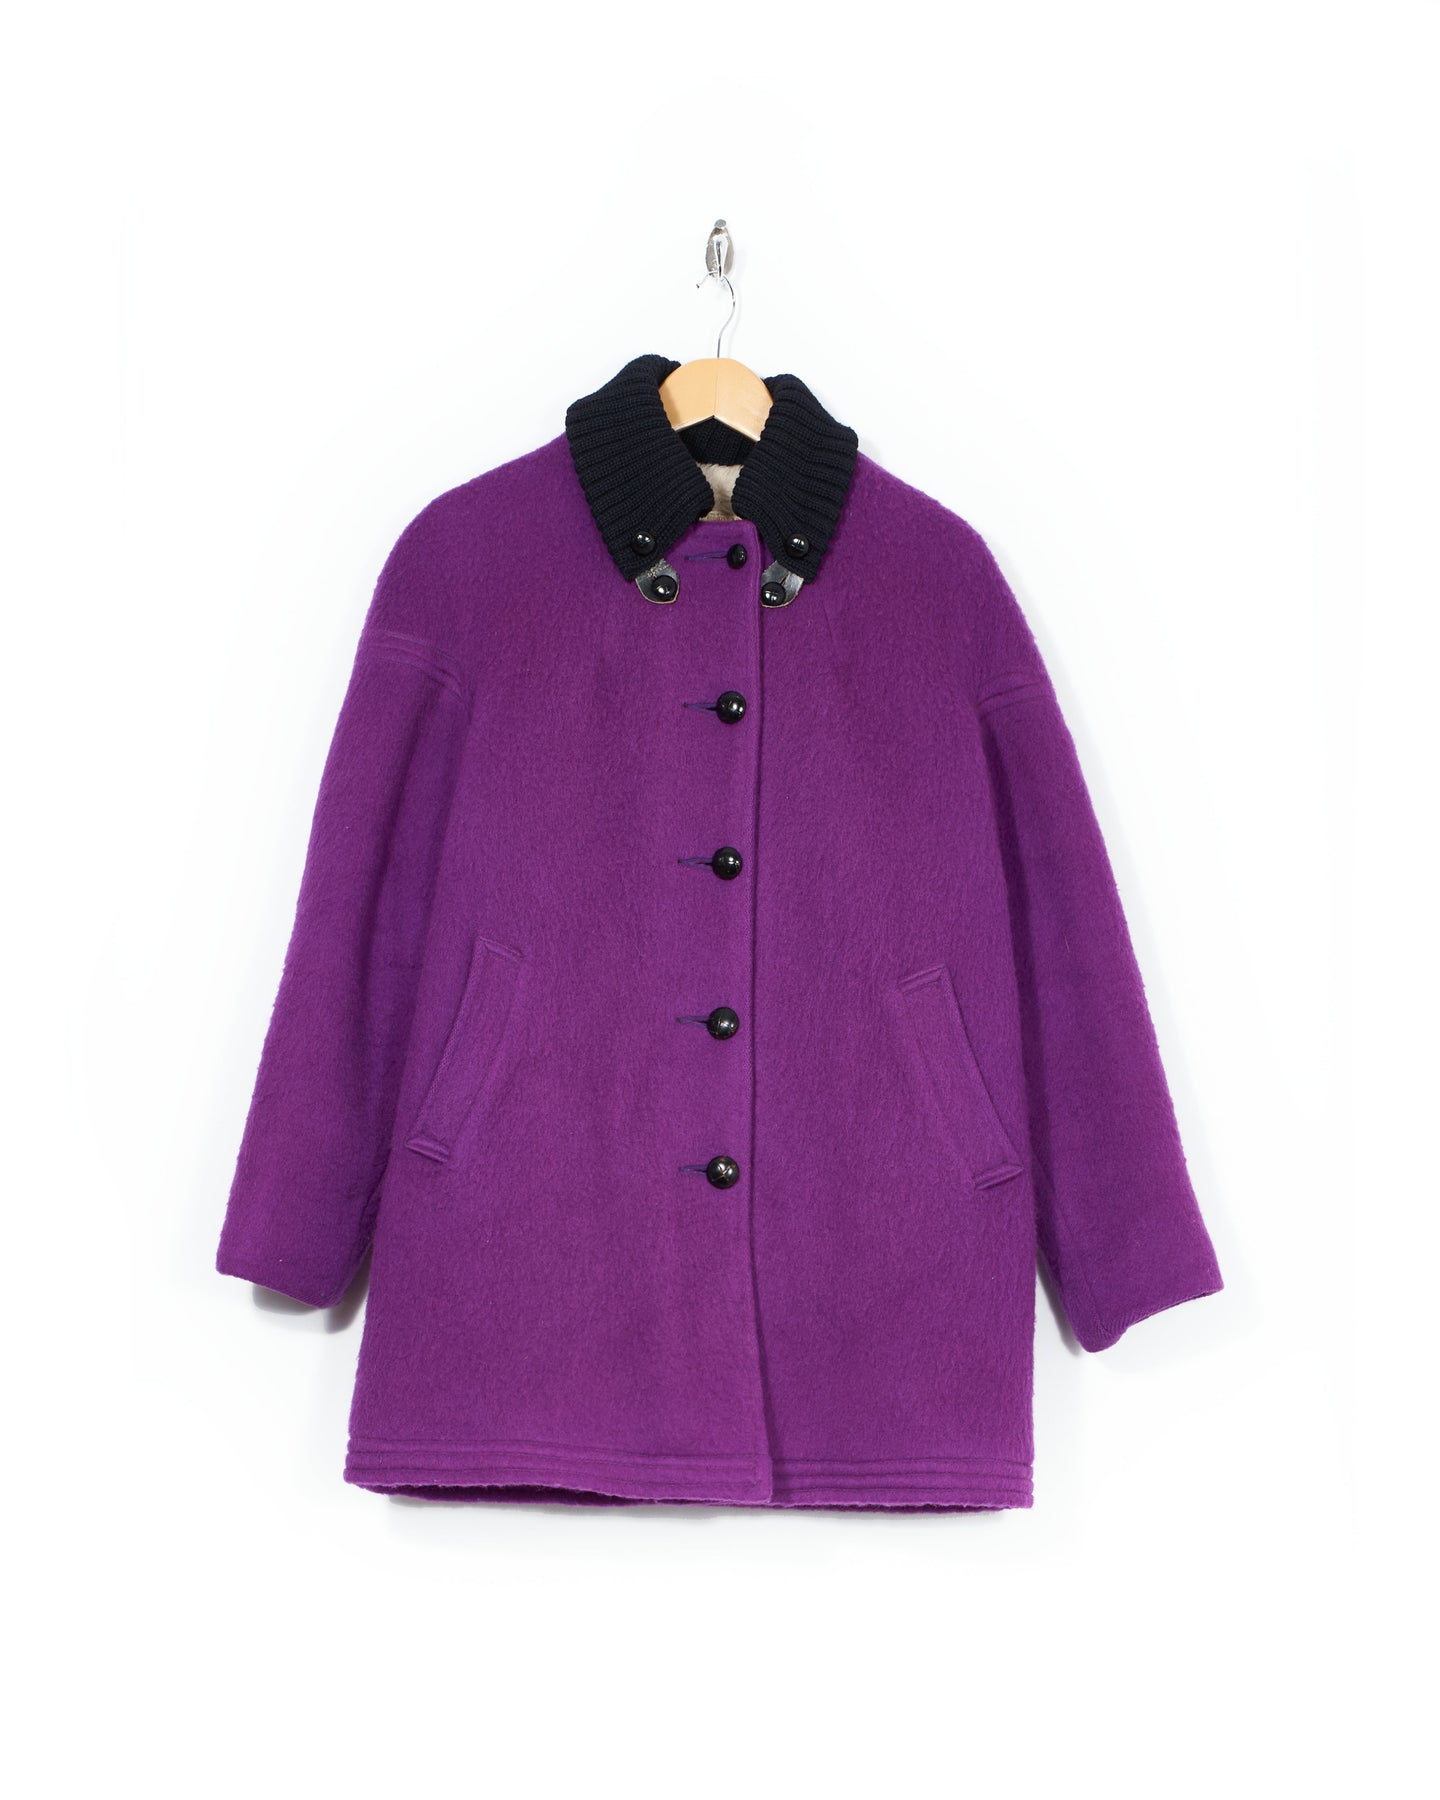 Hudson's Bay Wool Coat